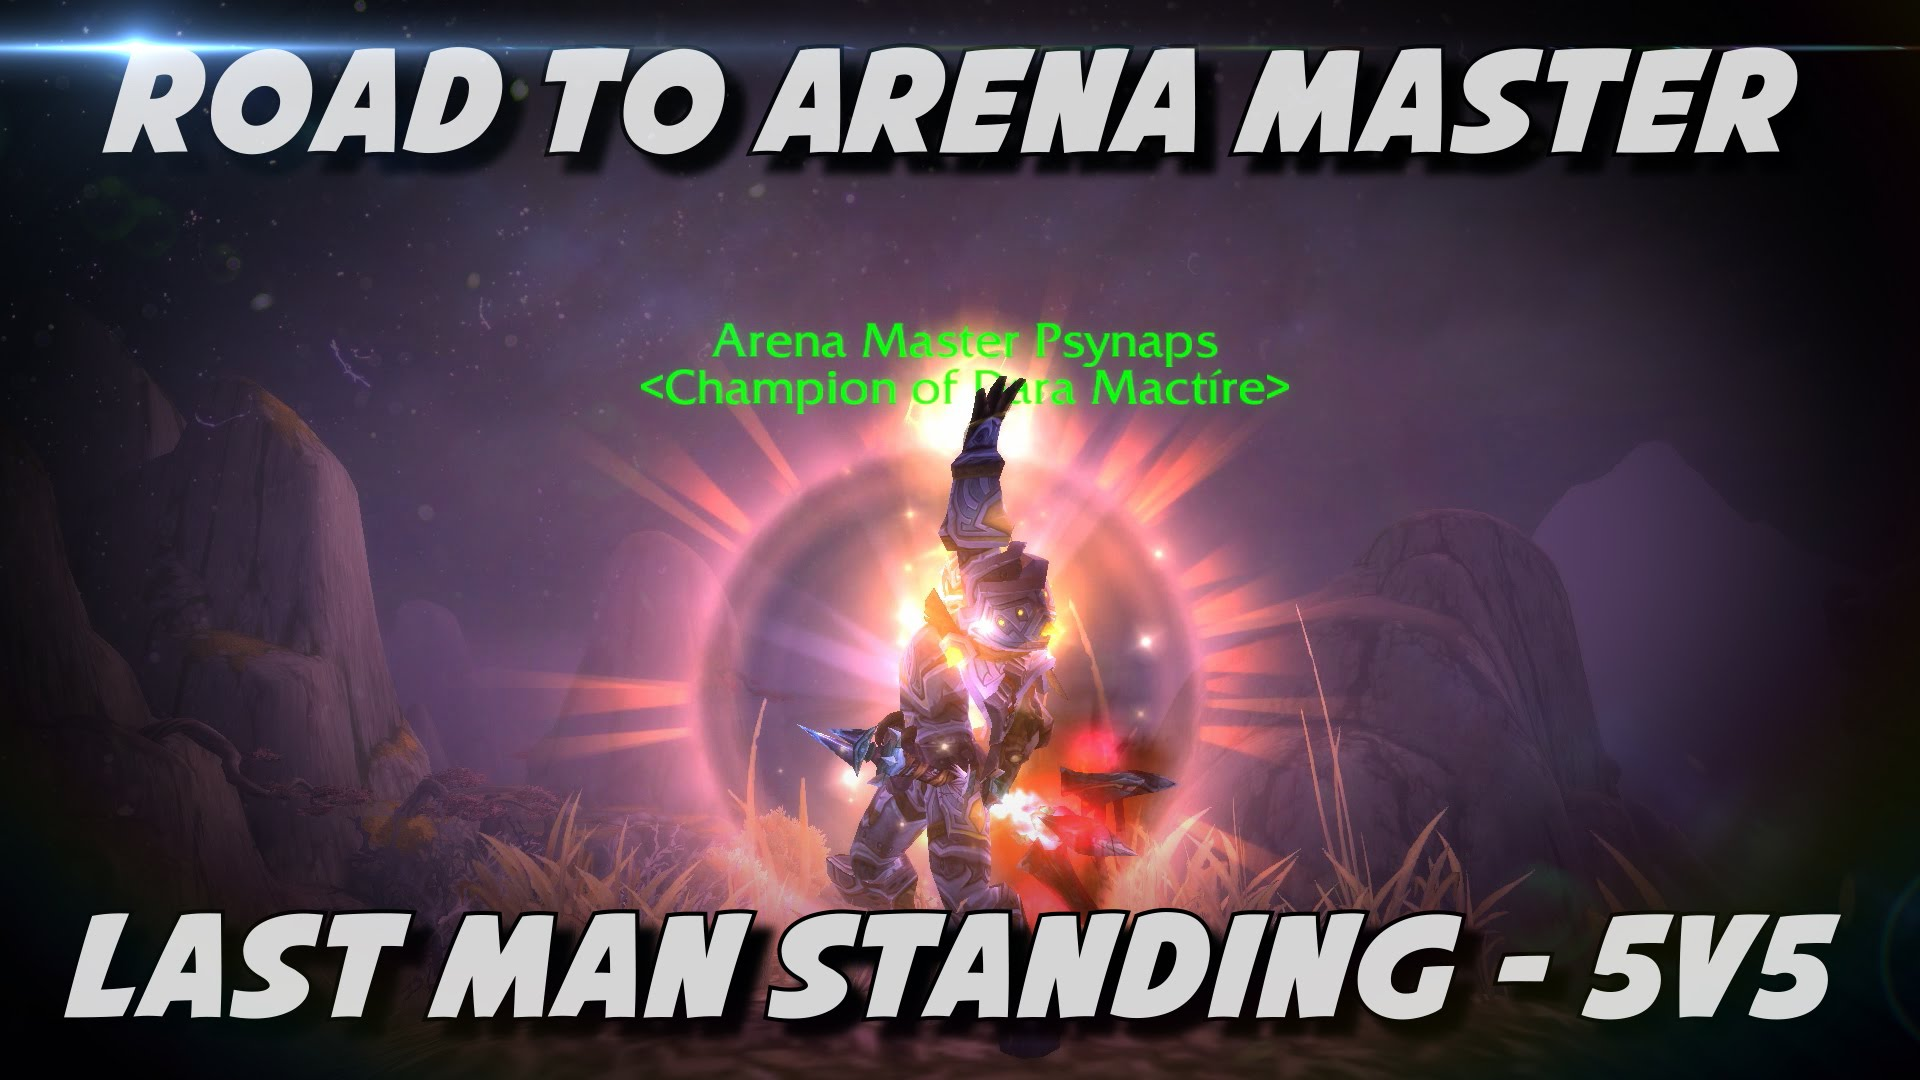 Last Man Standing 5v5 Holy Paladin 5.4: Road to Arena Master